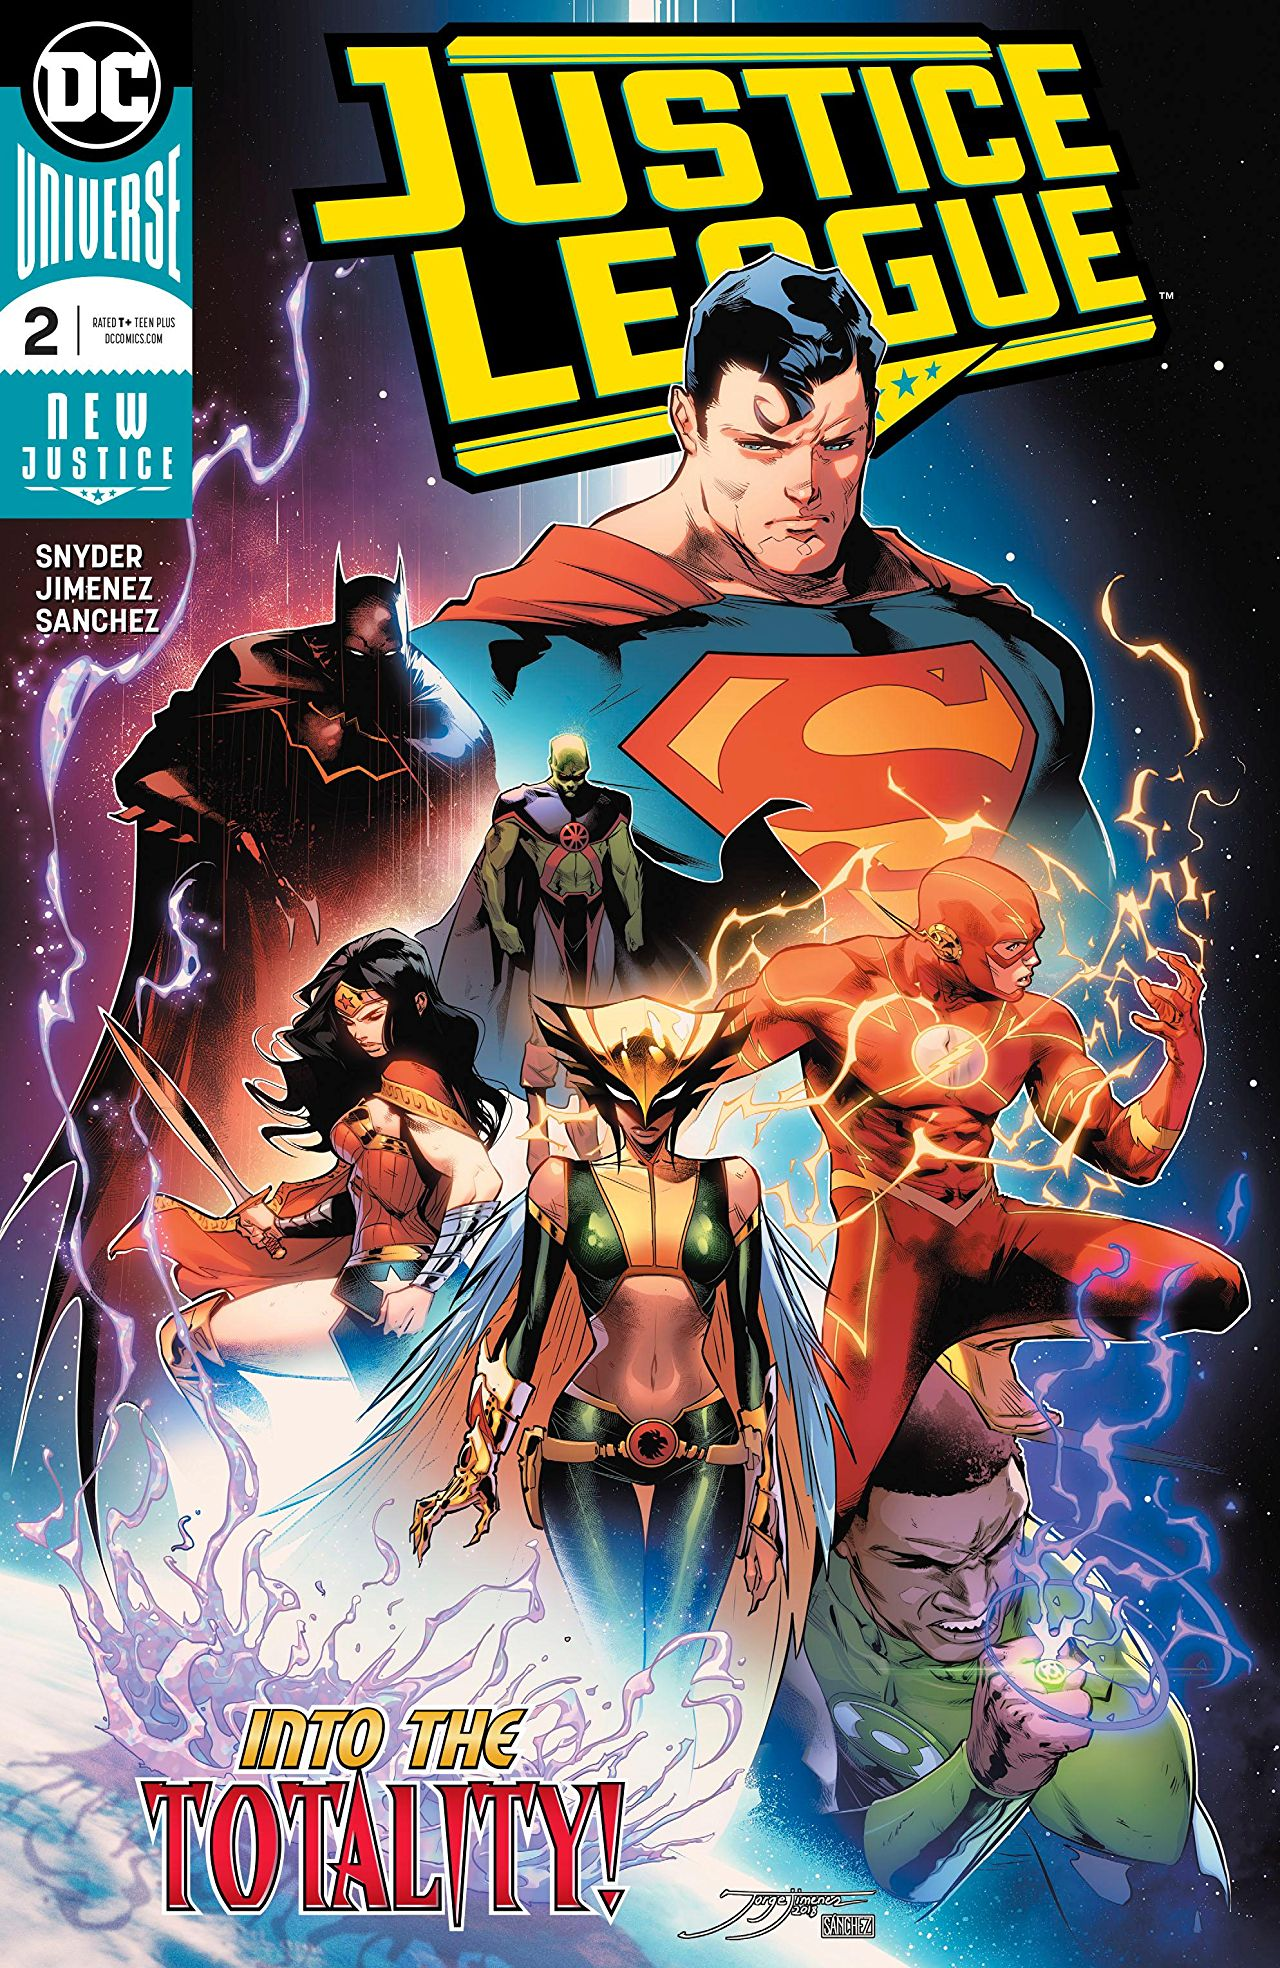 Justice League #2 The Totality Part 2 Comic Book Review